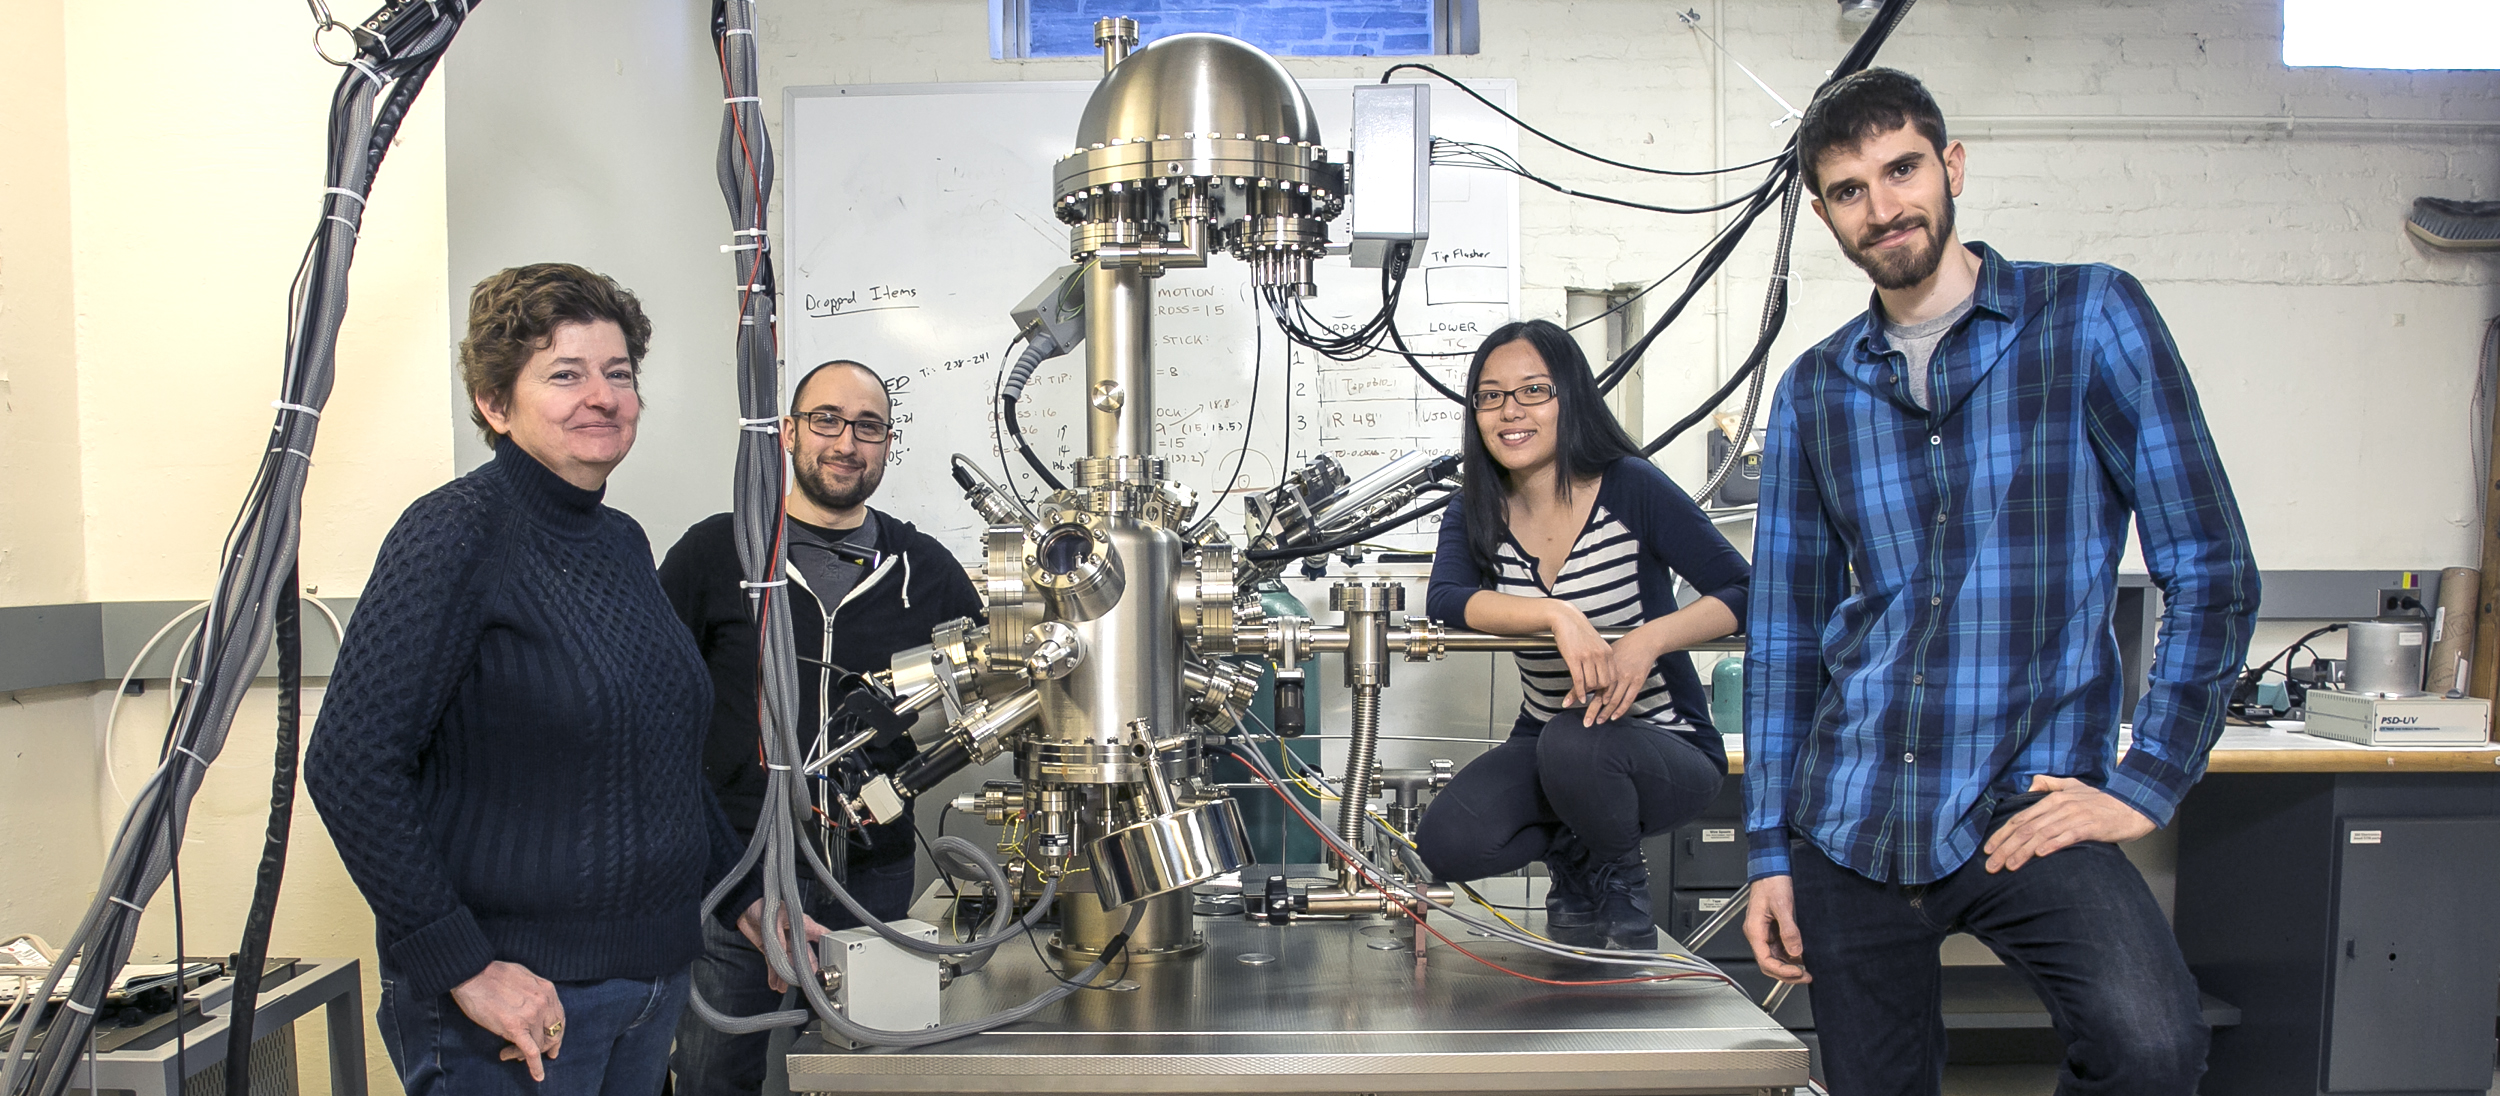 The Hines lab uses scanning tunneling microscopy to capture images of individual atoms on a surface, before and after chemical reactions, to study patterns.